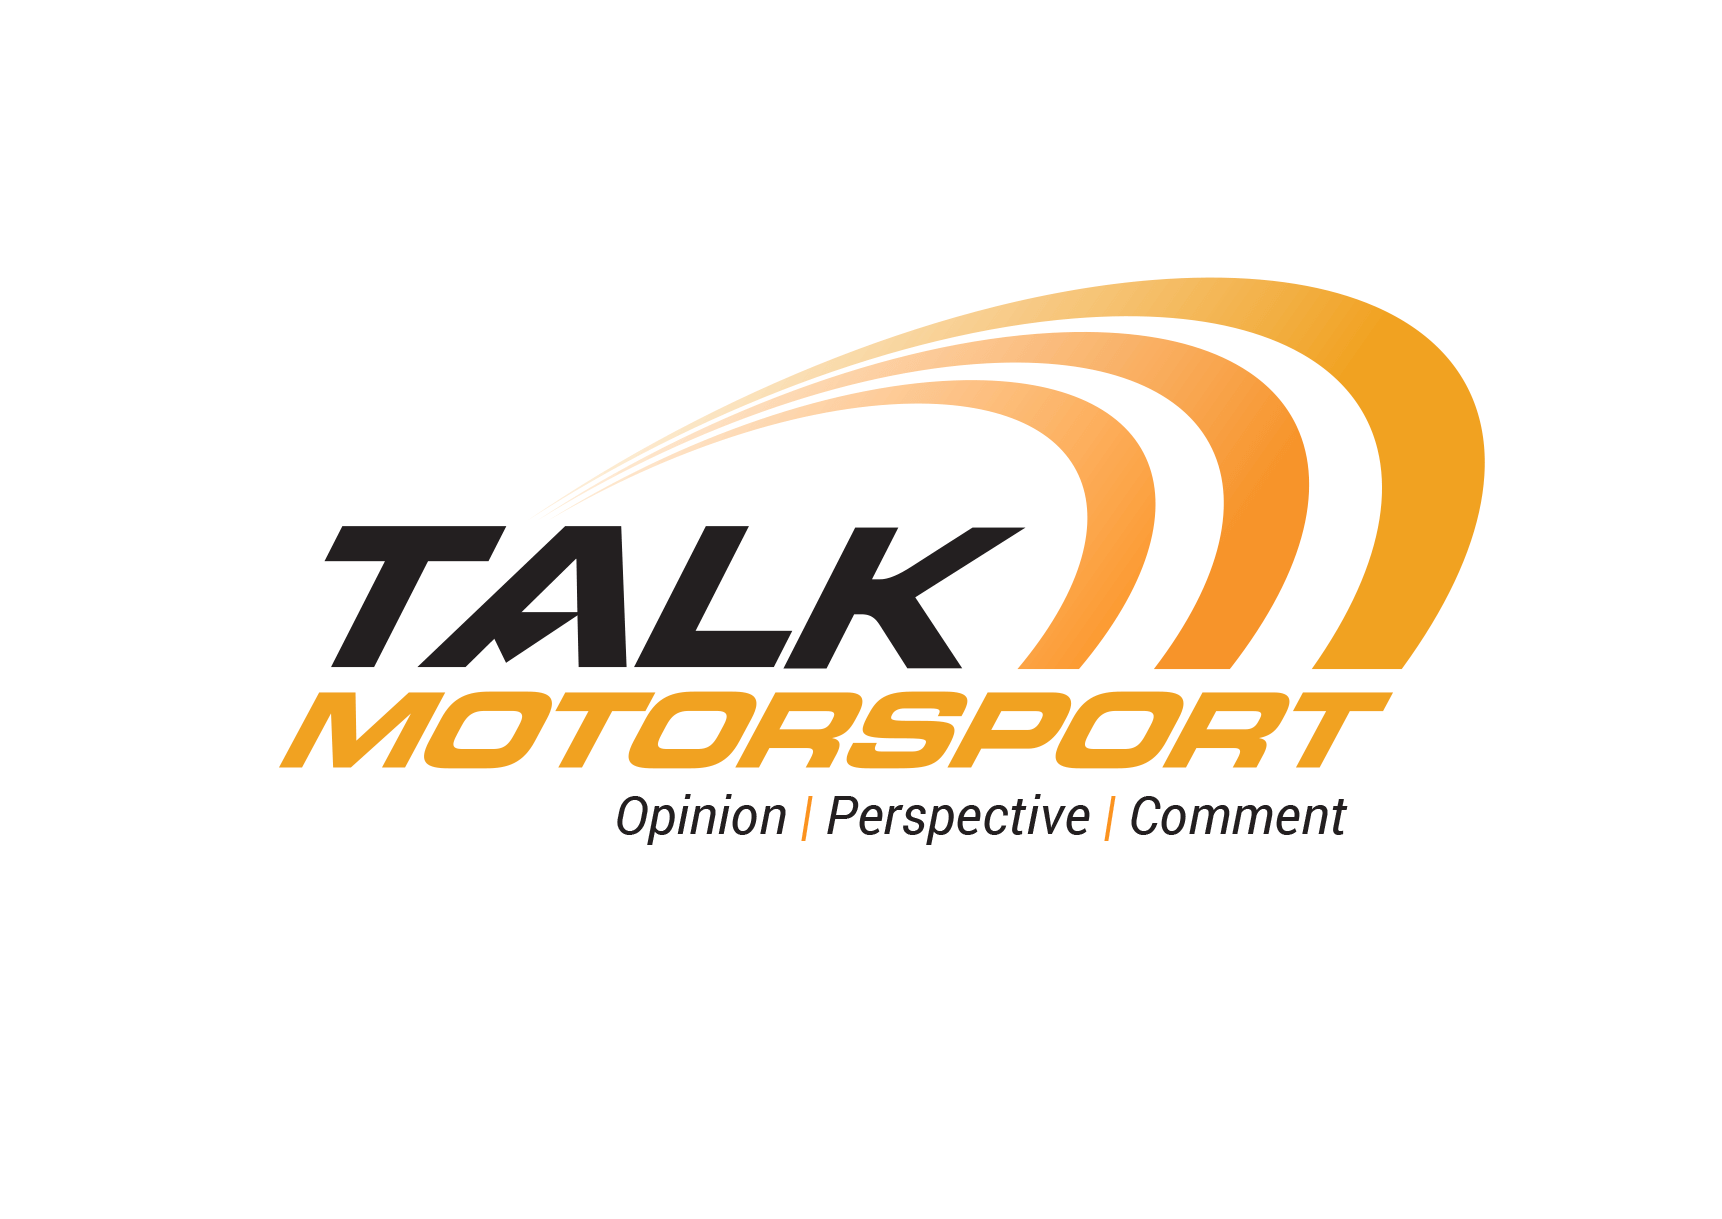 Talk Motorsport logo design - Pinnacle&Co. Christchurch